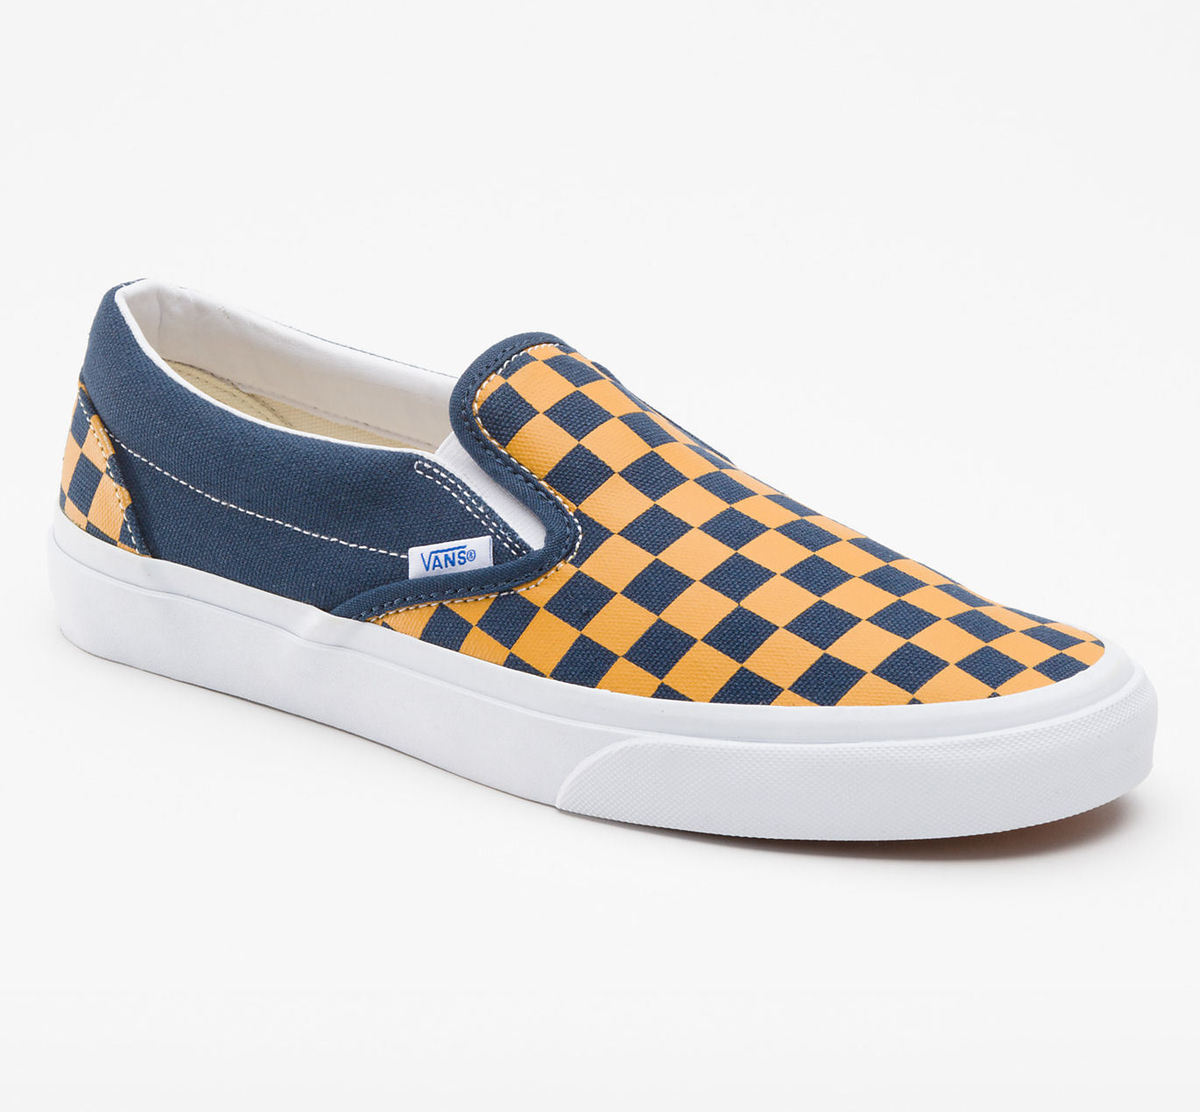 boty VANS - Classic Slip-on (Vintage Check) - Dress Bly - VKYK7SX